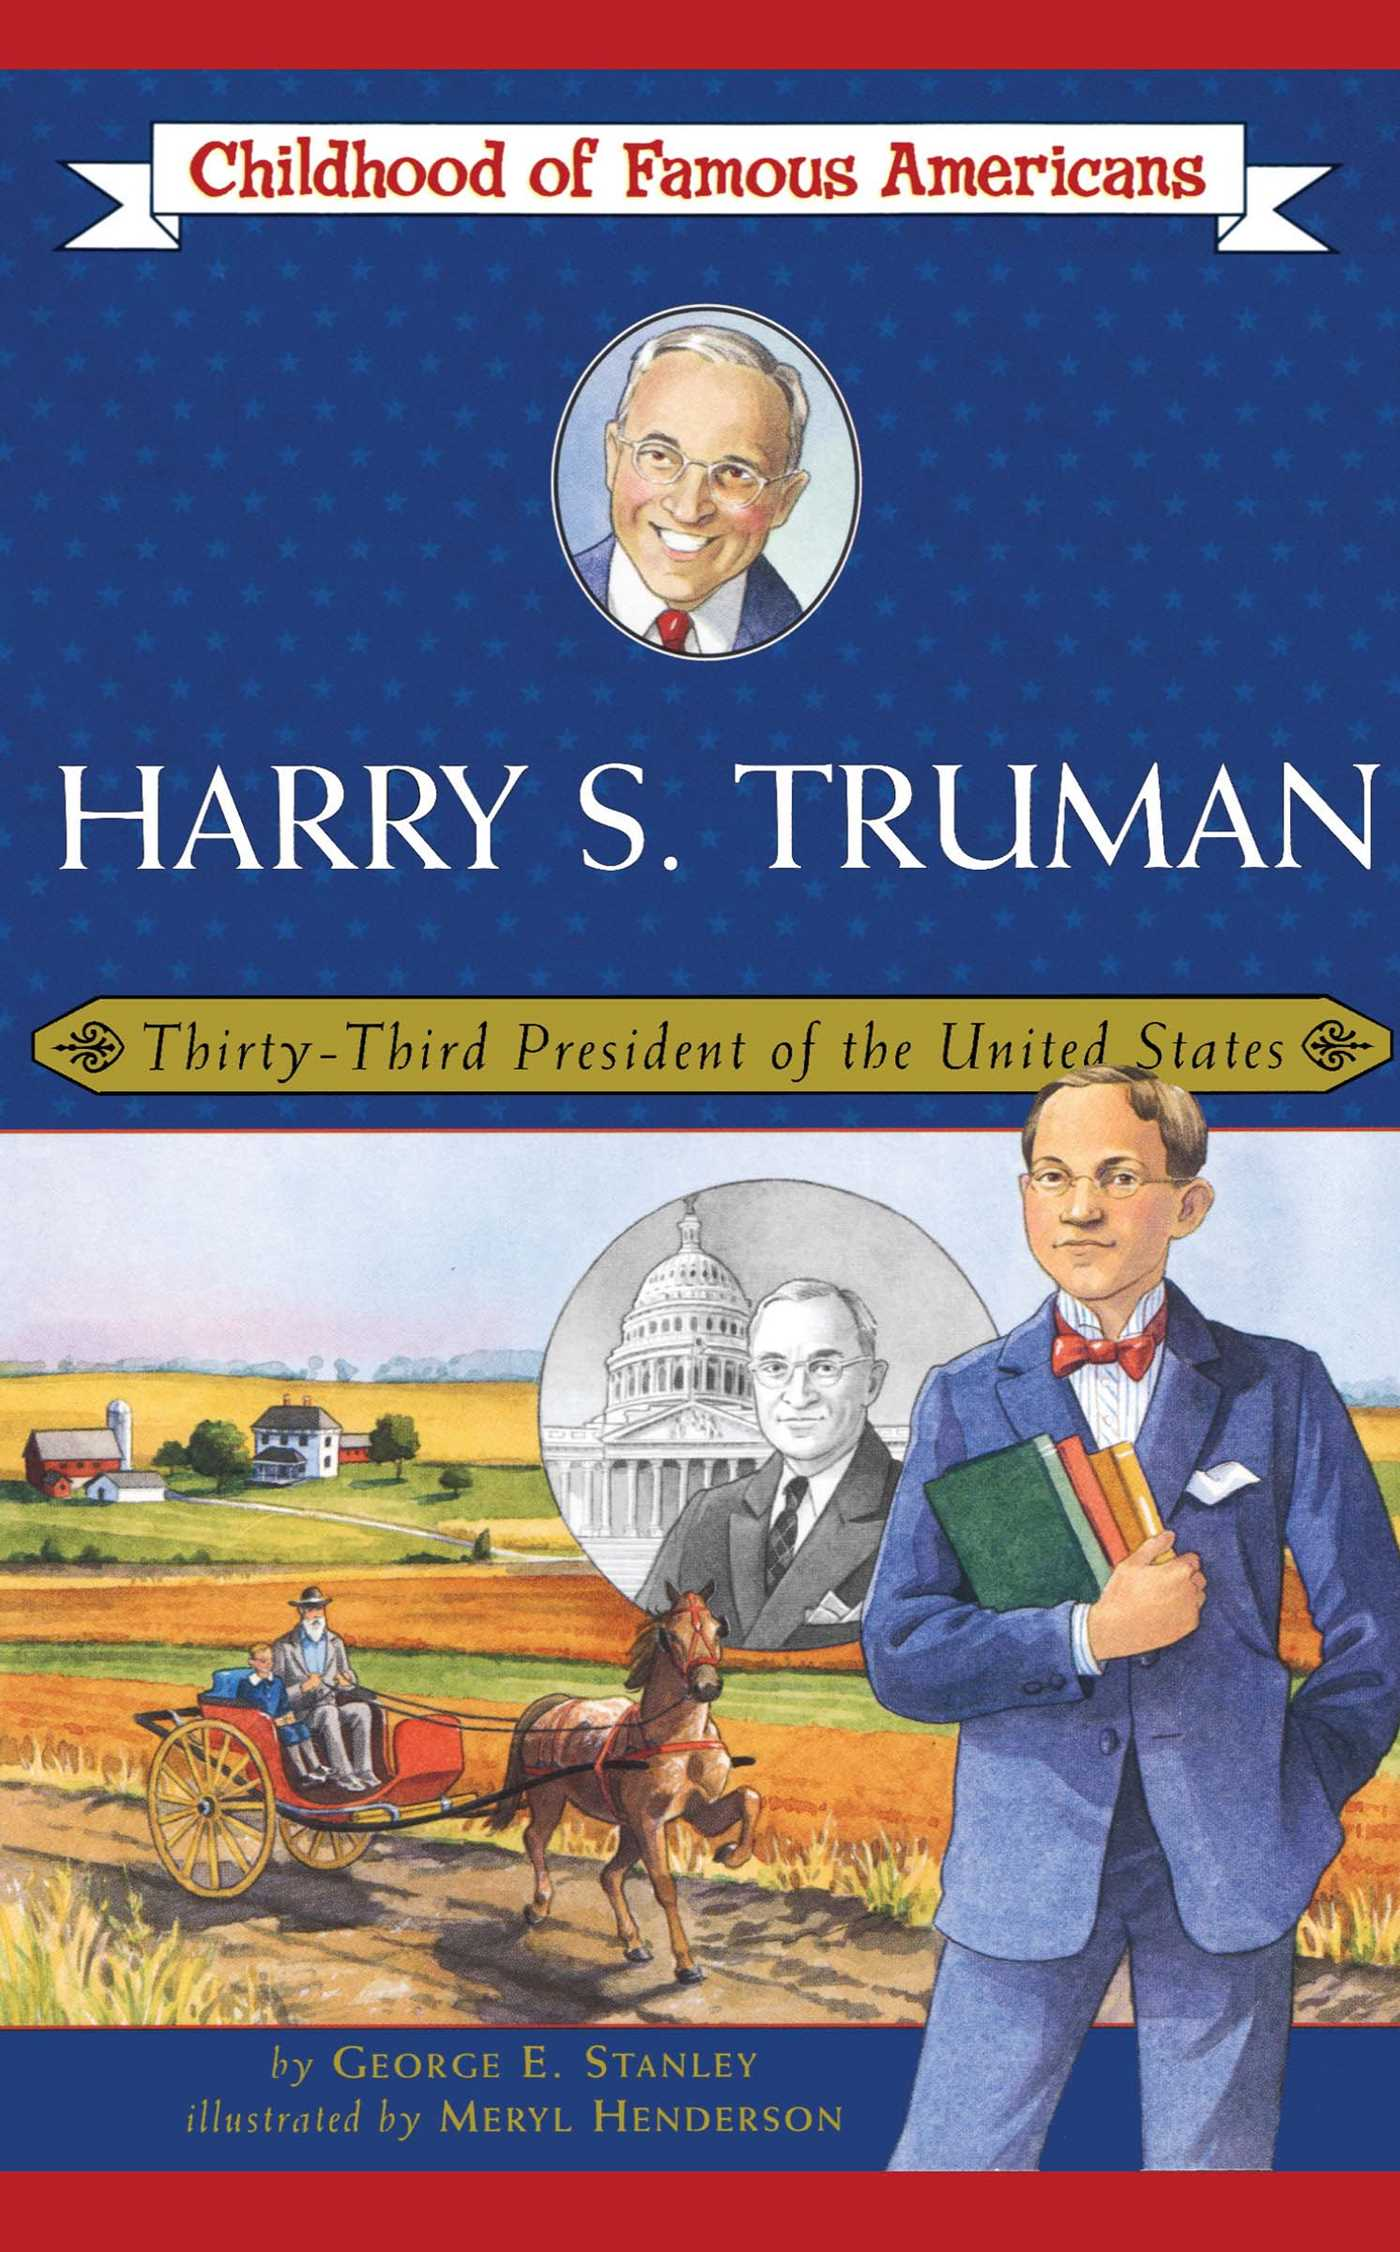 Harry-s-truman-9780689862472_hr